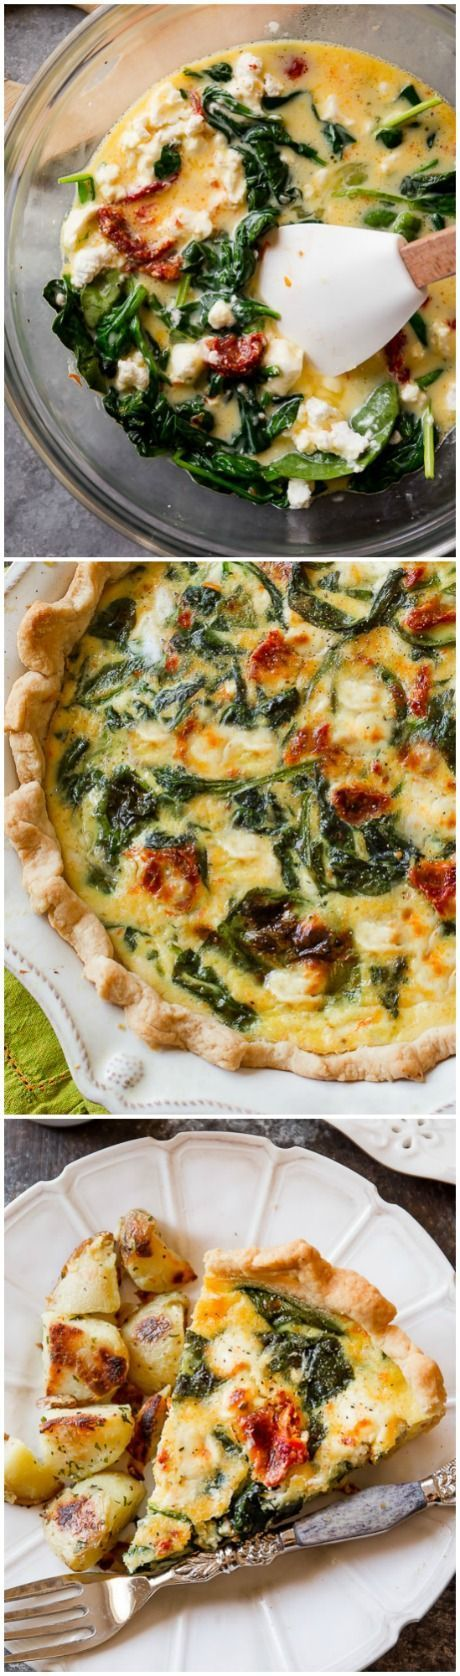 25 best ideas about tomato quiche on pinterest spinach quiche recipes healthy quiche recipes - Make sun dried tomatoes explosion flavor ...